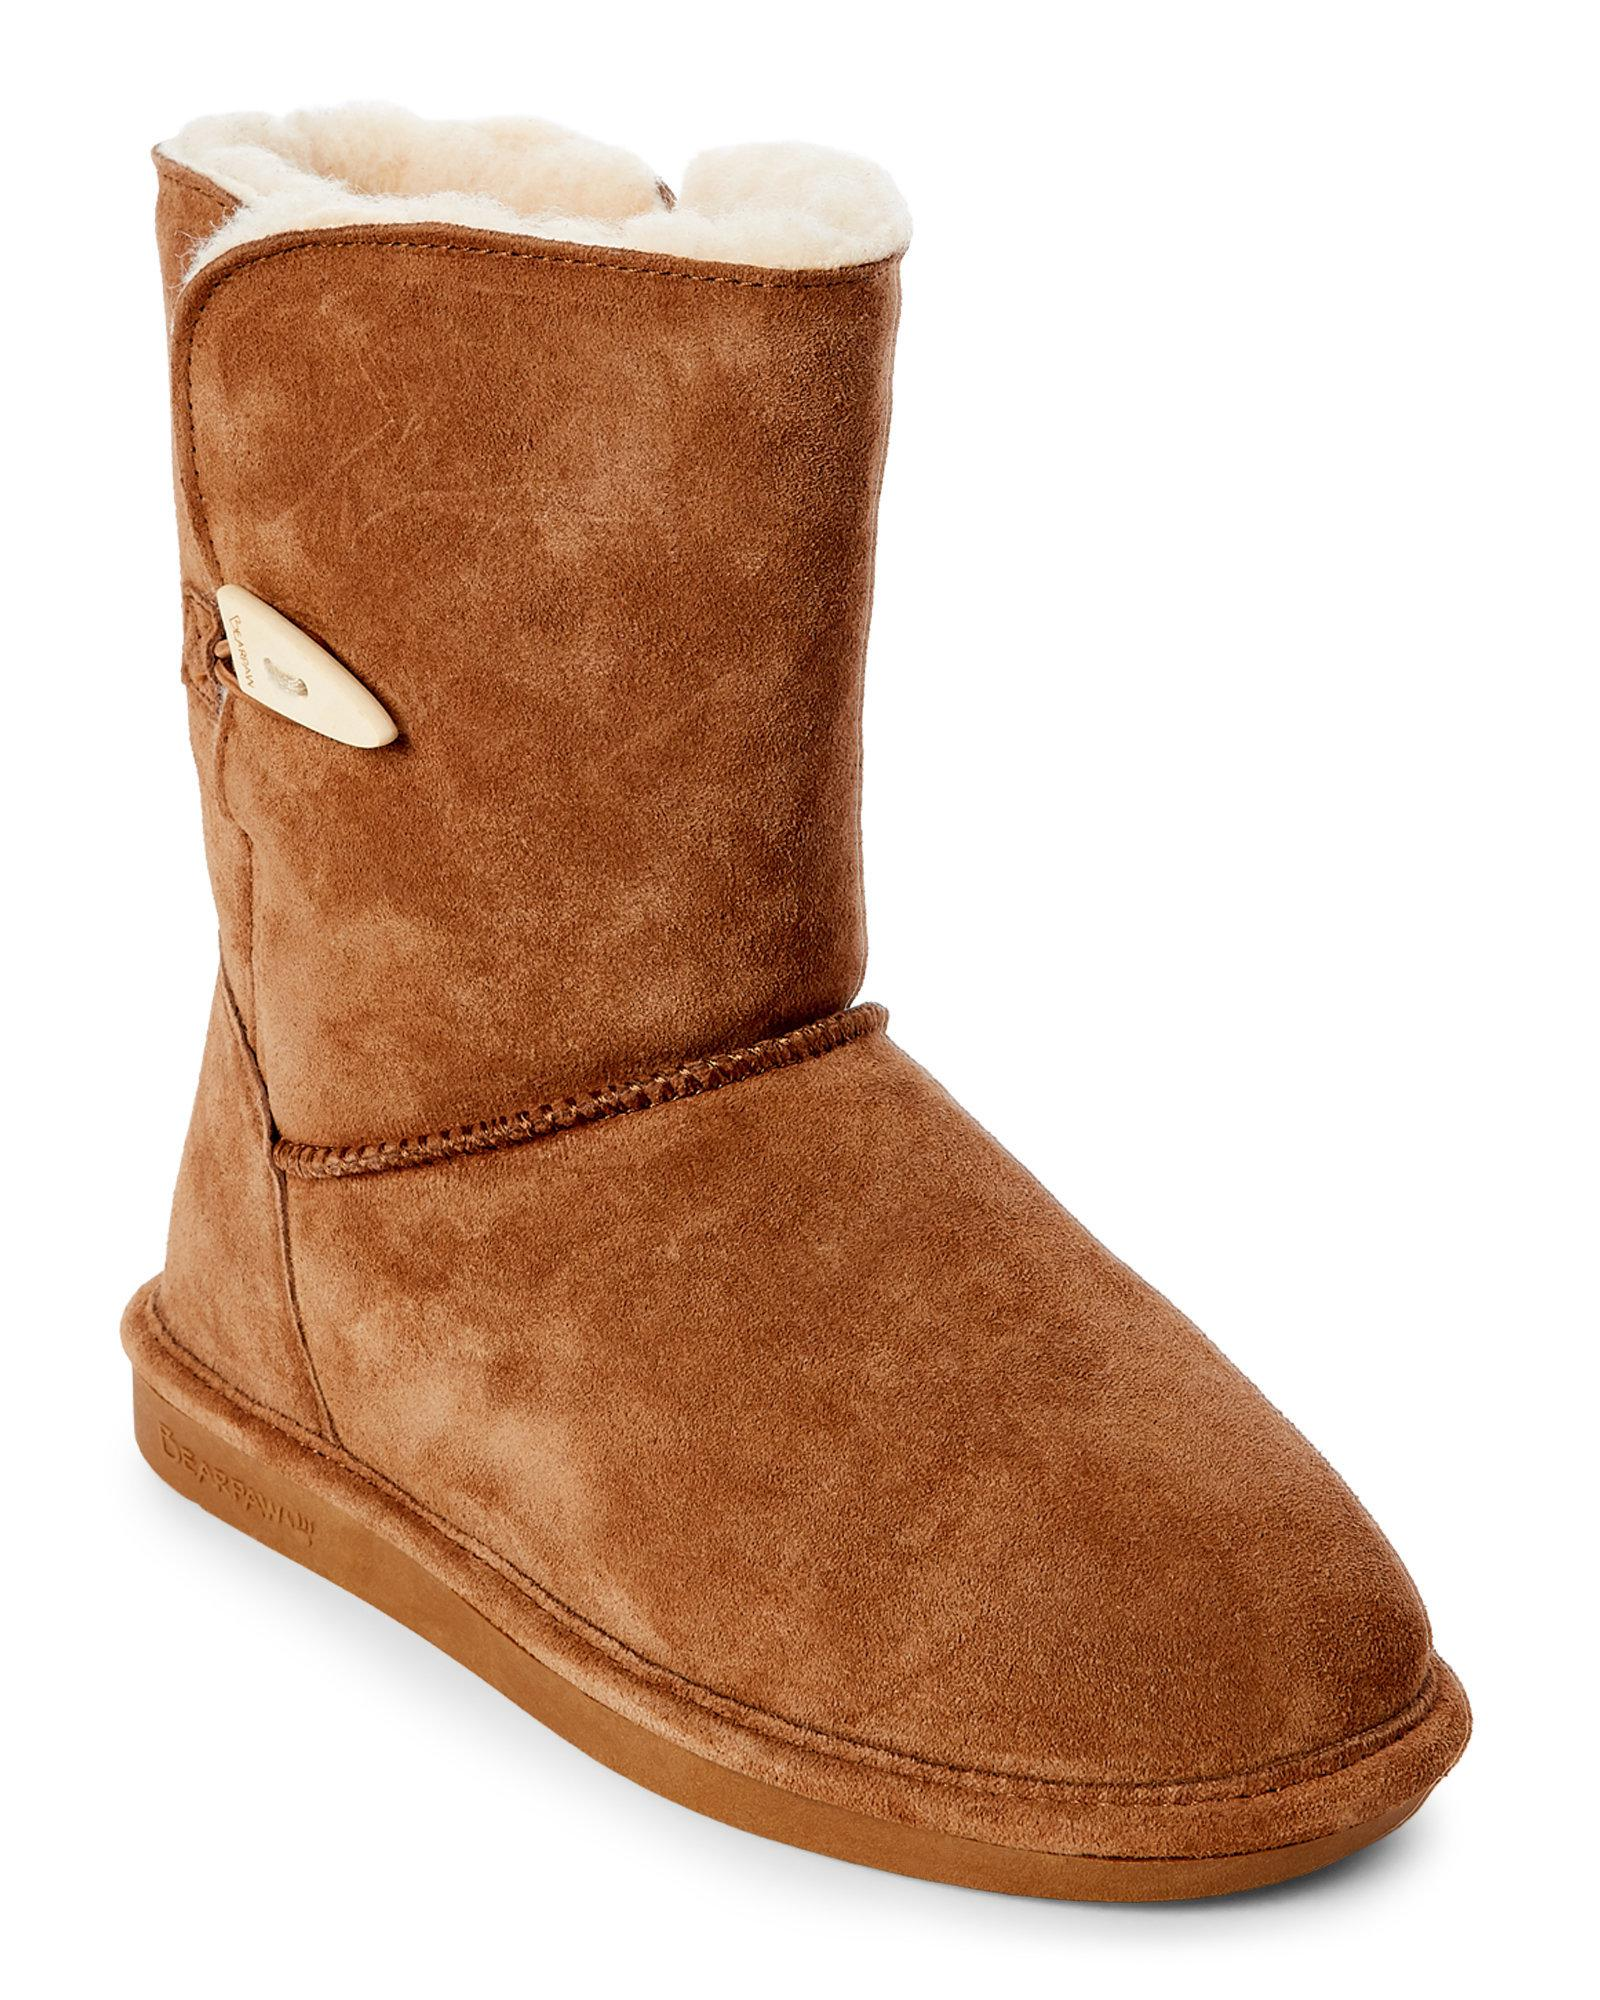 526d06d3b74 BEARPAW Hickory Victorian Real Fur Short Boots in Brown - Lyst